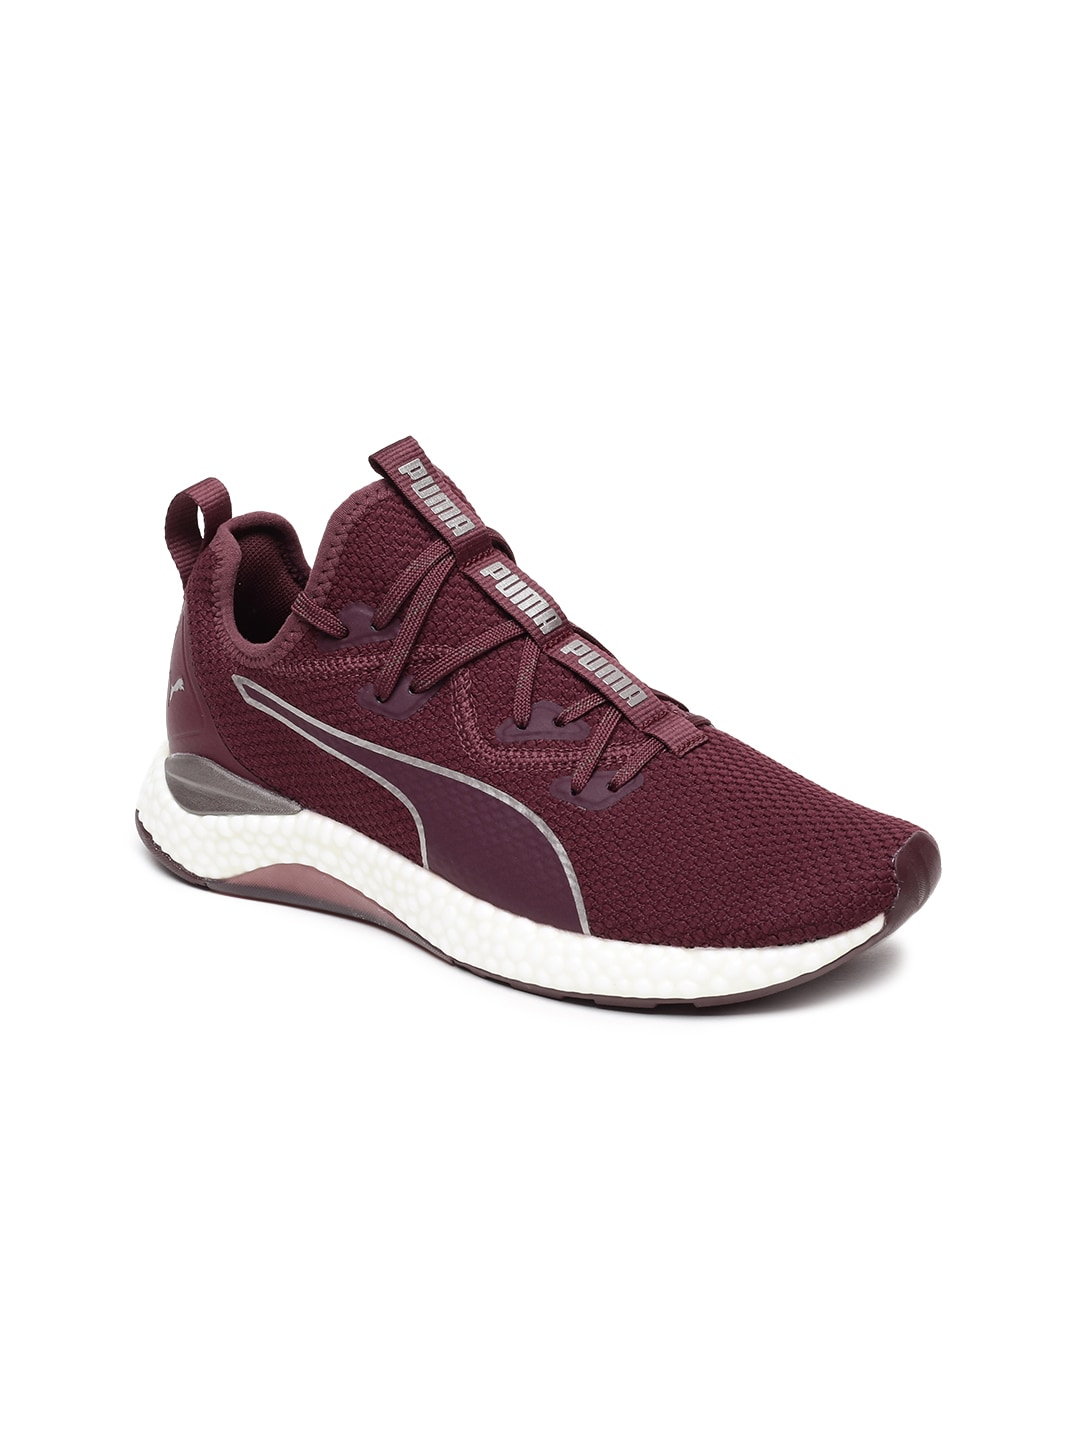 Puma Sports Shoes Buy For Men Women Online In Sequence Orange India At Best Price